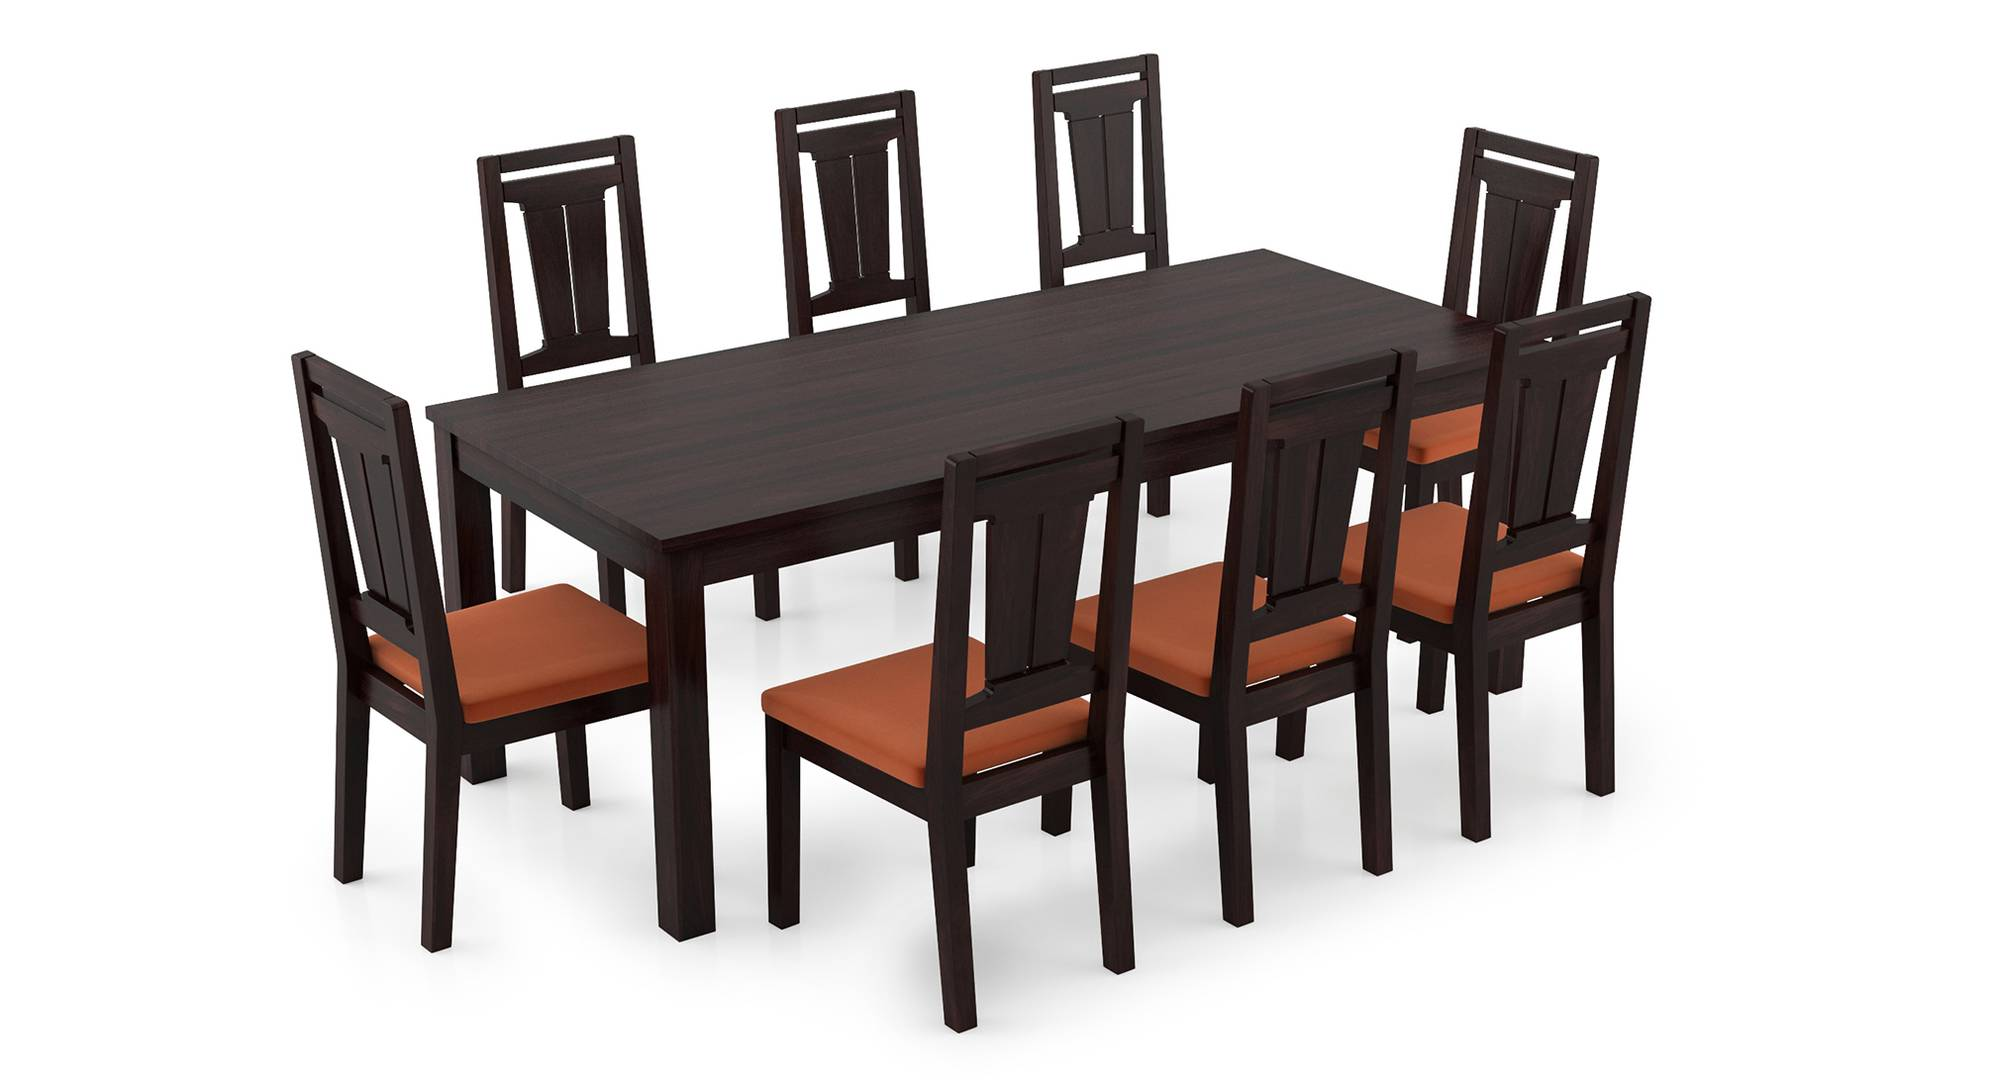 Martha 8 Seater Dining Table Set, 8 Seat Dining Room Table